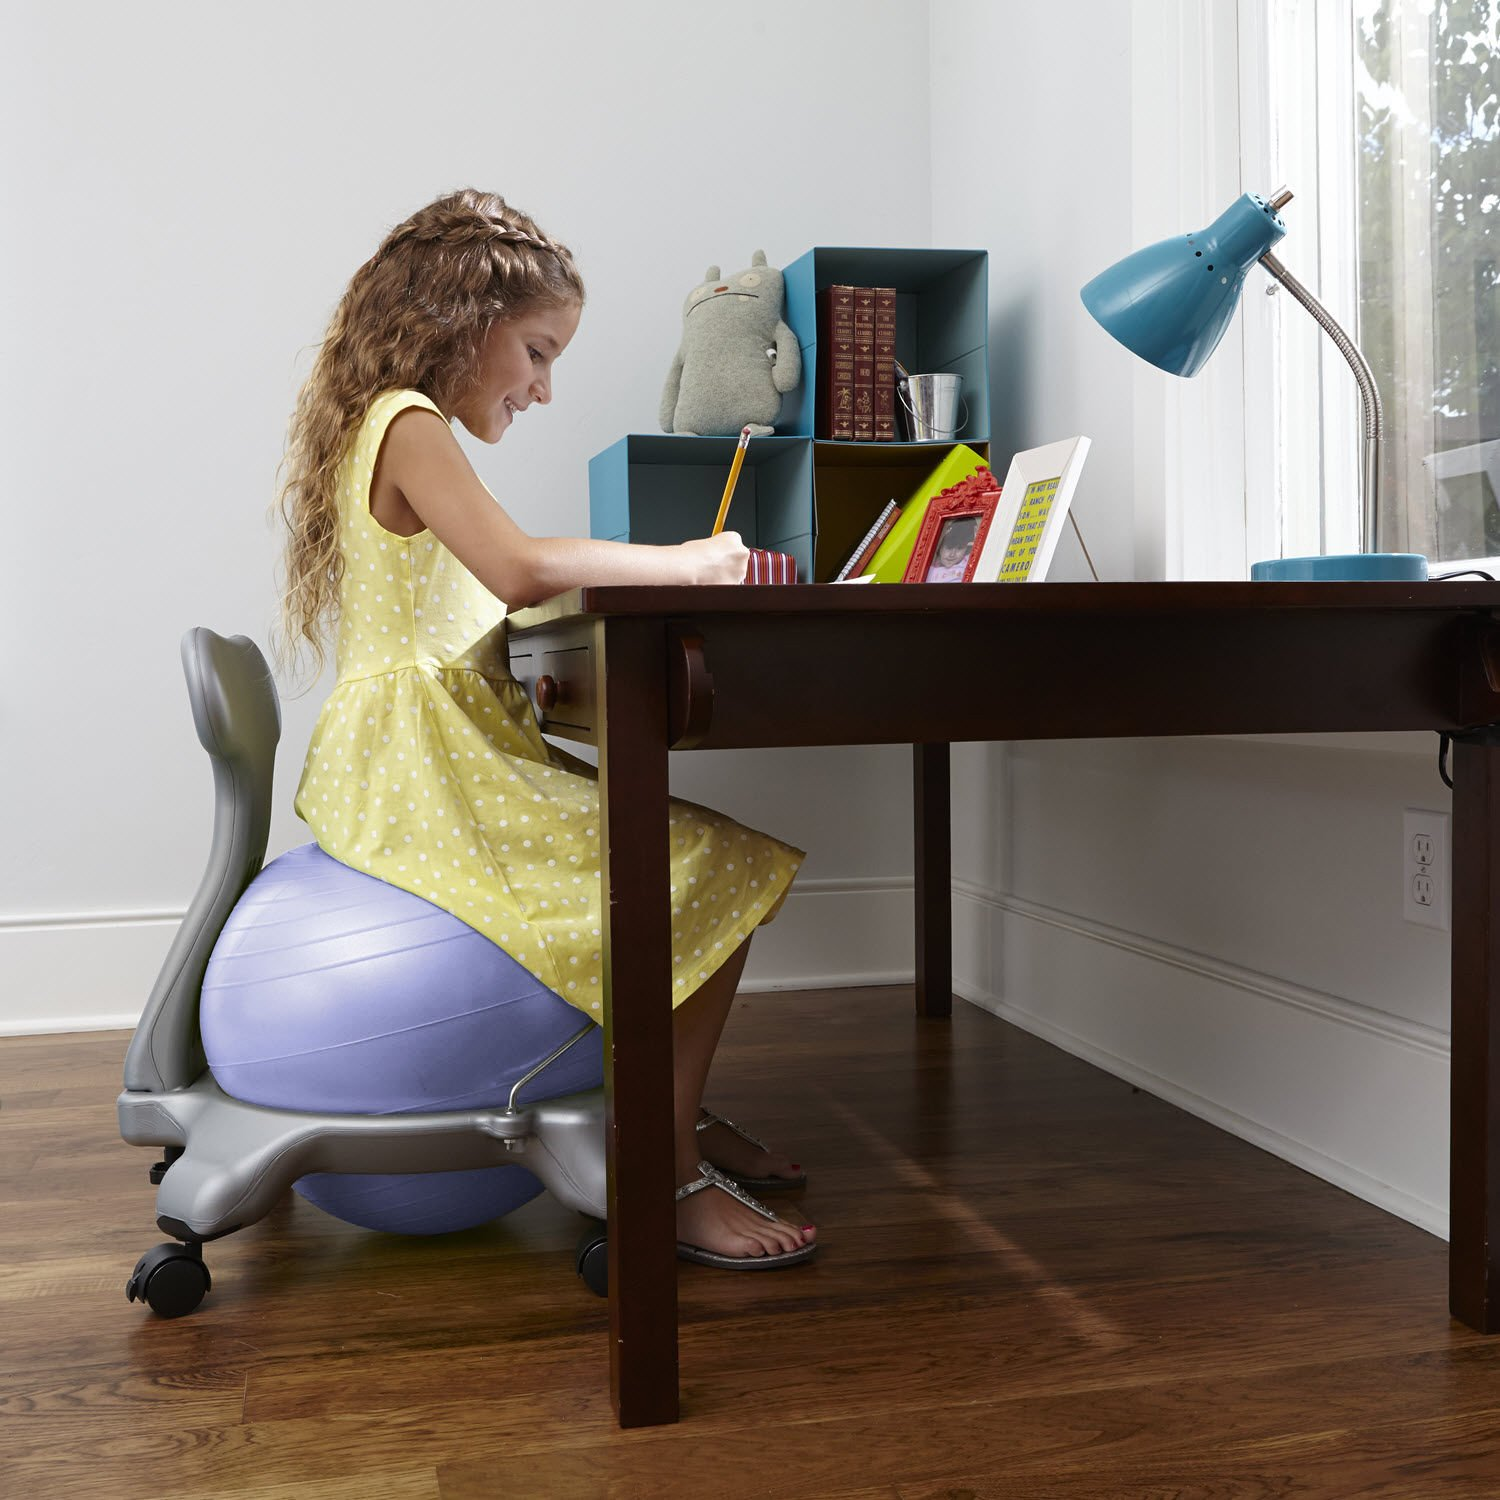 Gaiam Kids Balance Ball Chair - Classic Children's Stability Ball Chair, Alternative School Classroom Flexible Desk Seating for Active Students with Satisfaction Guarantee, Green by Gaiam (Image #4)